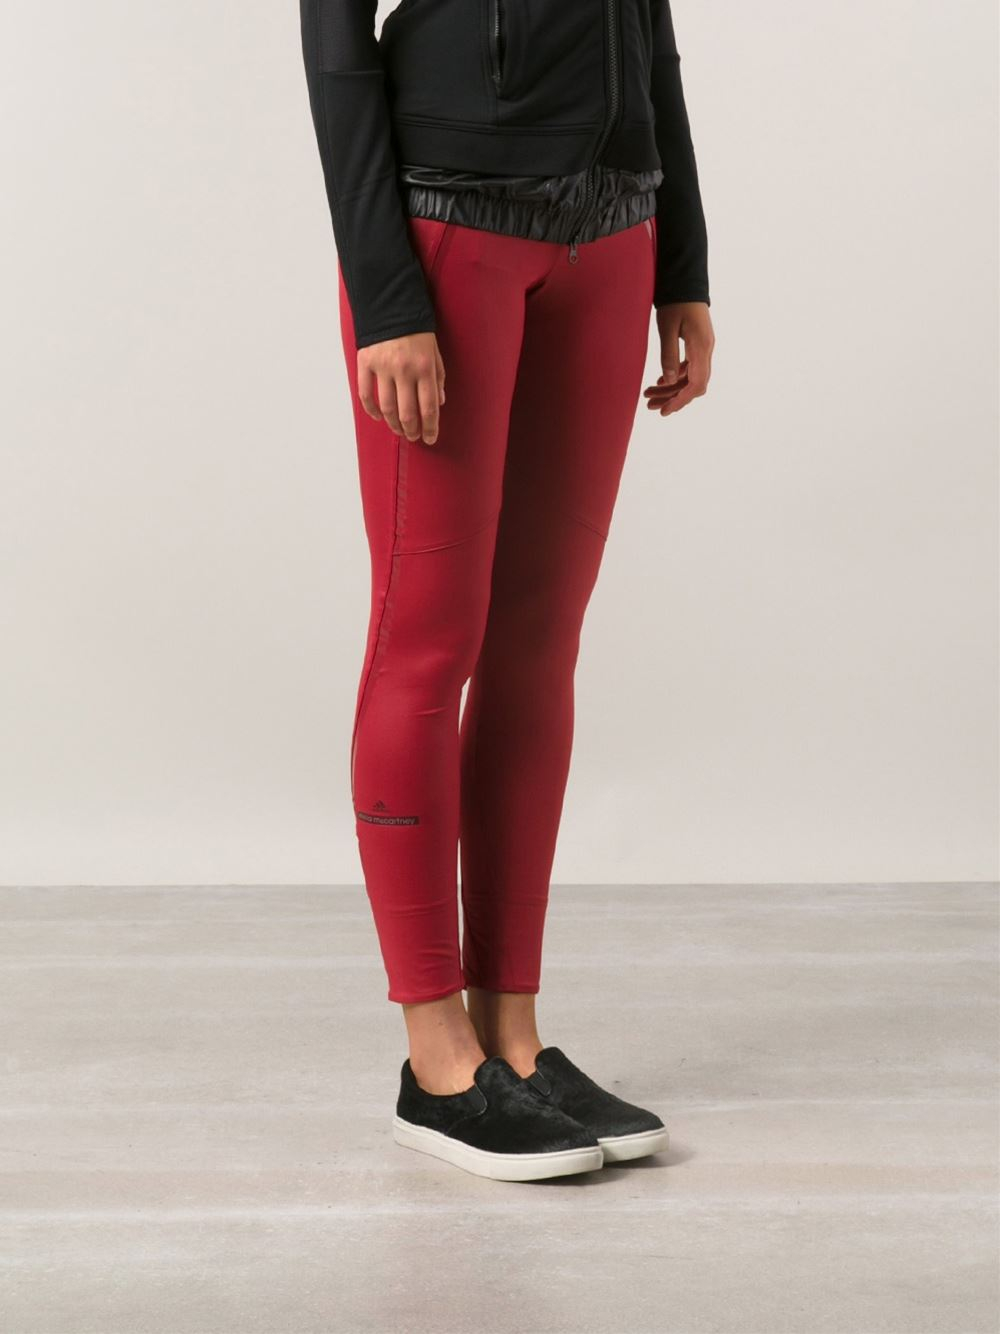 lyst adidas by stella mccartney stella mccartney 39 run performance 39 leggings in red. Black Bedroom Furniture Sets. Home Design Ideas